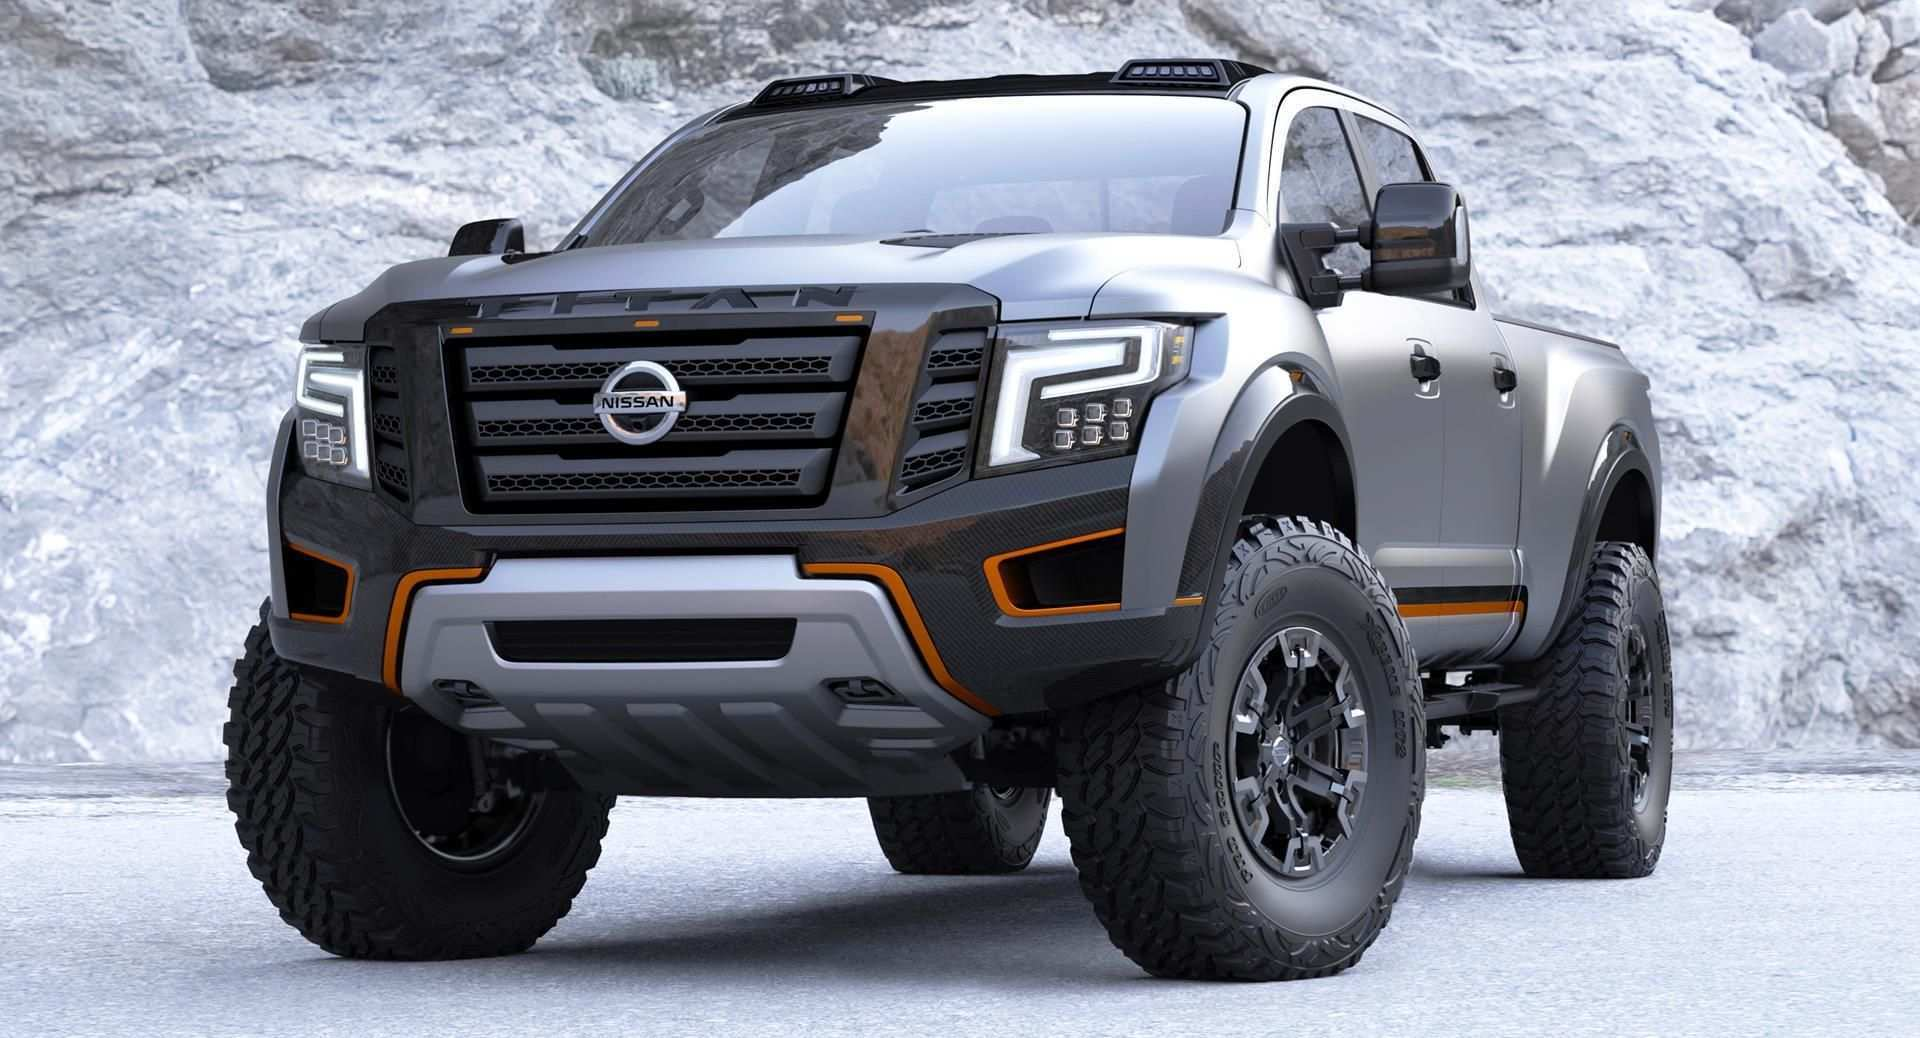 65 All New Nissan Warrior 2020 Redesign for Nissan Warrior 2020